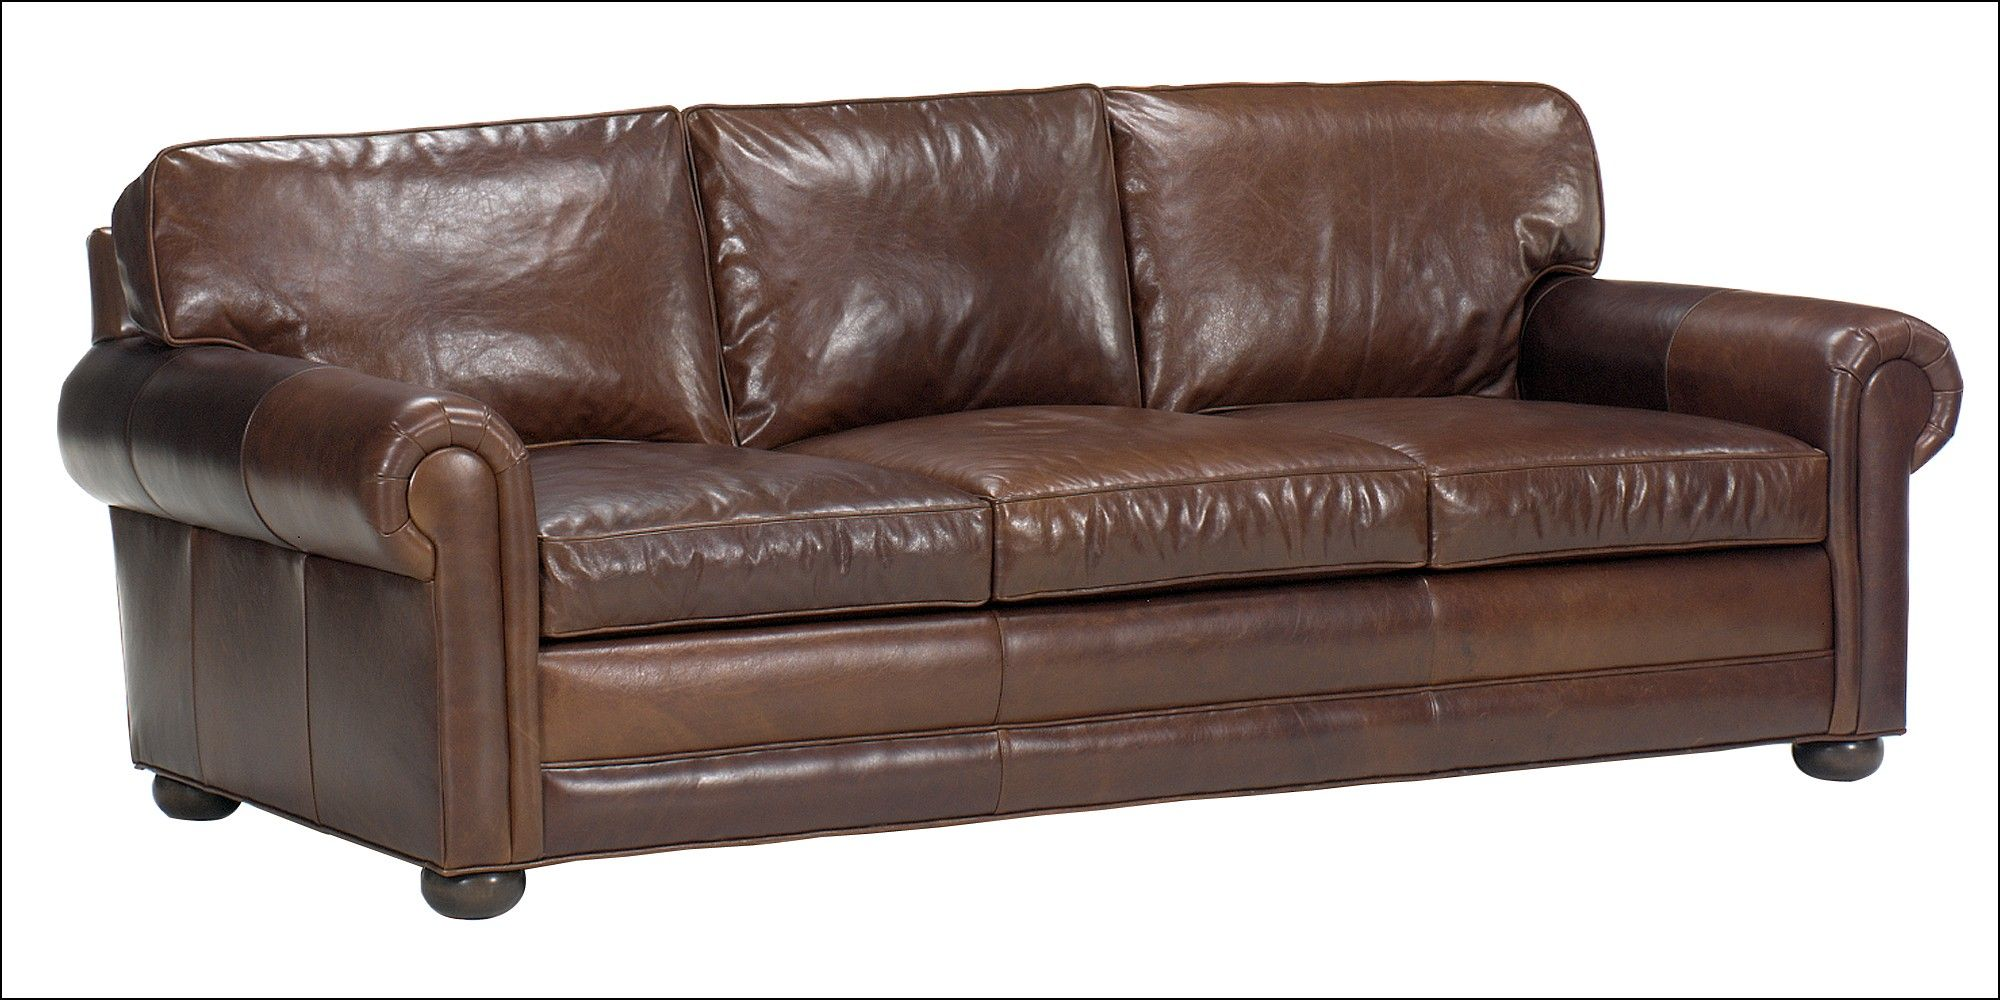 Charmant Deep Seat Leather Couch